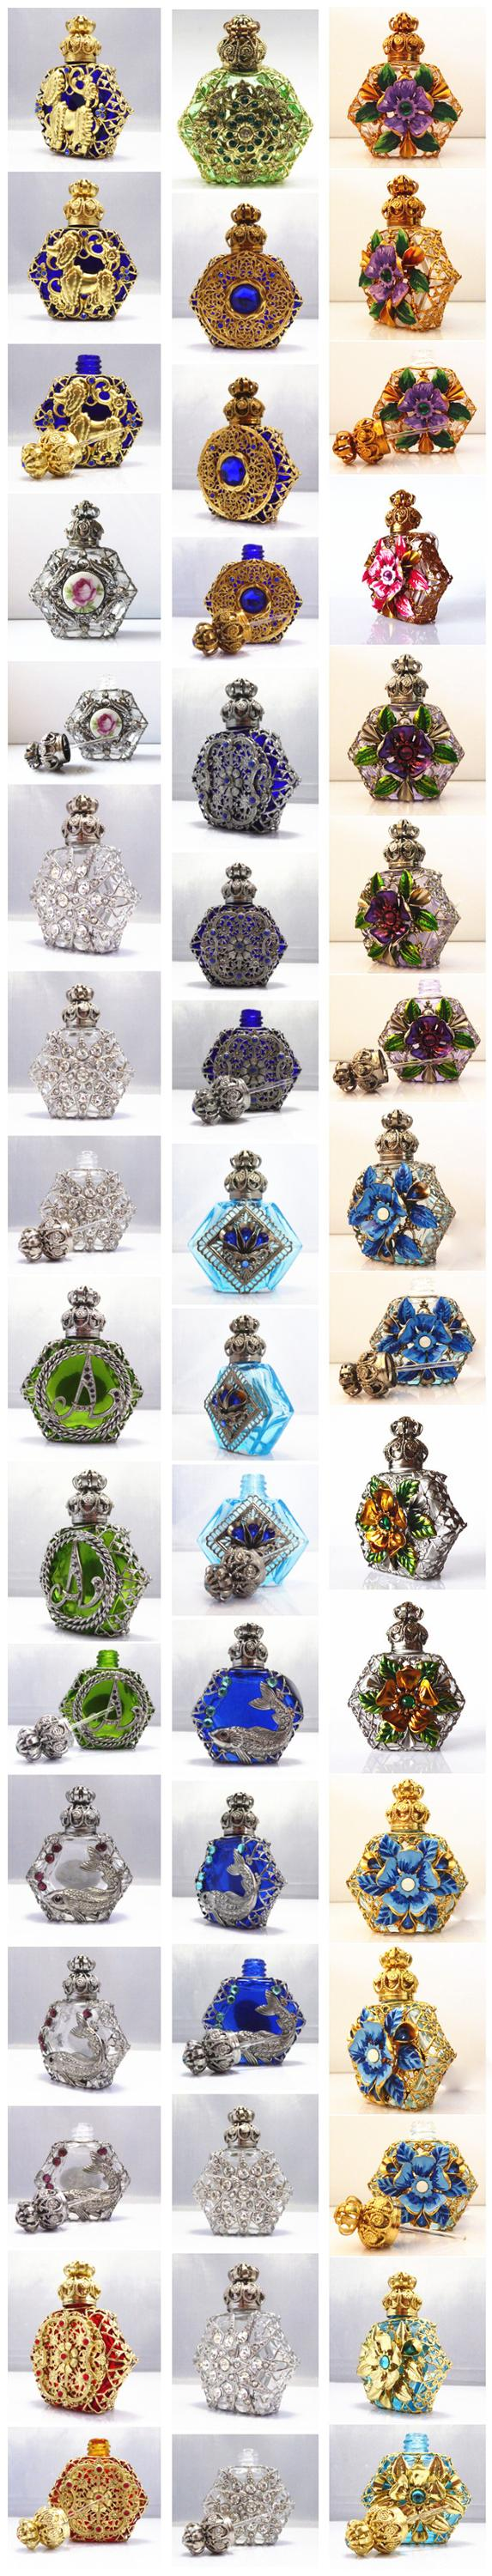 New Hot Arabic Style Metal Glass Material Unique Perfume Bottles with Metal and Beads Decorations